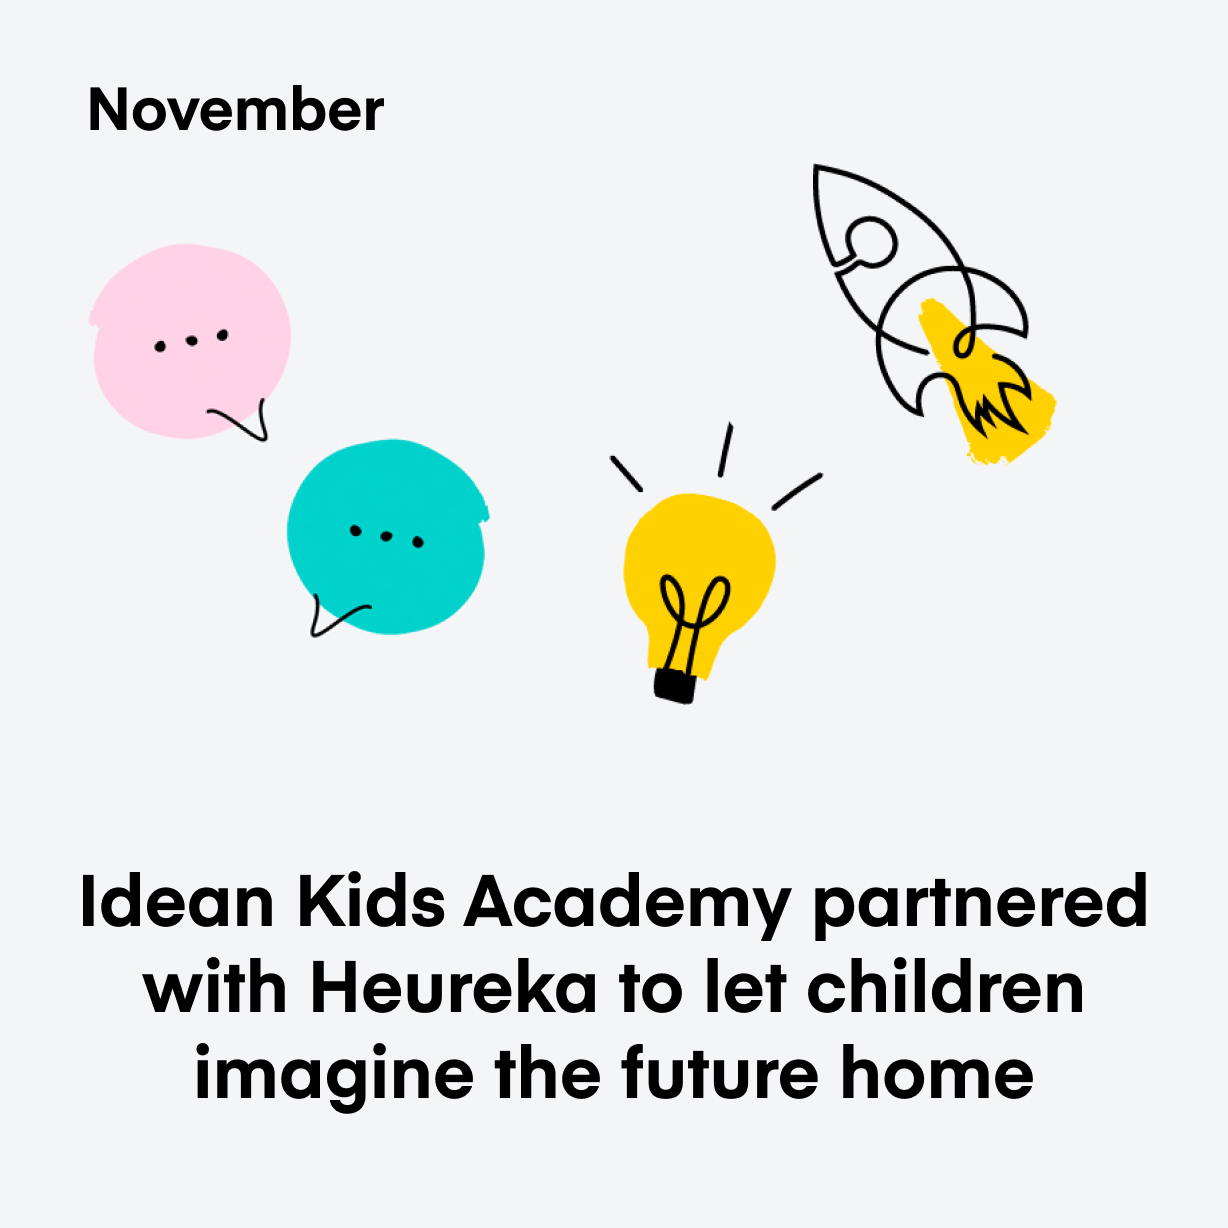 Idean Kids Academy partnered with Heureka to let children imagine the future home